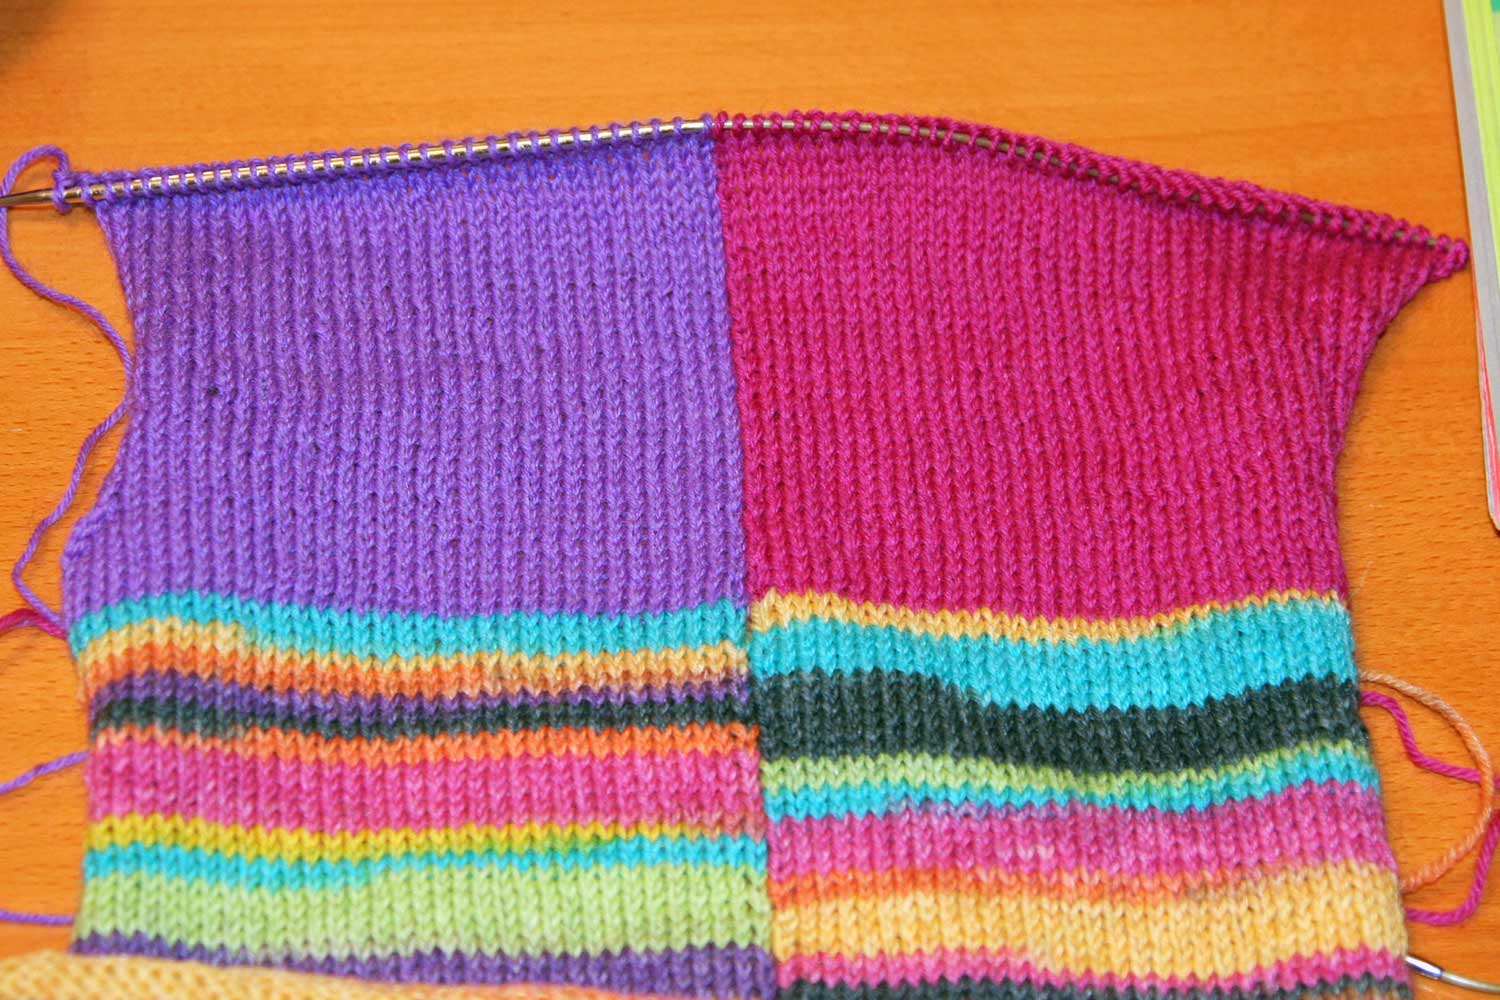 Intarsia project on the needles showing that the colour block on the right has been replaced with pink yarn.